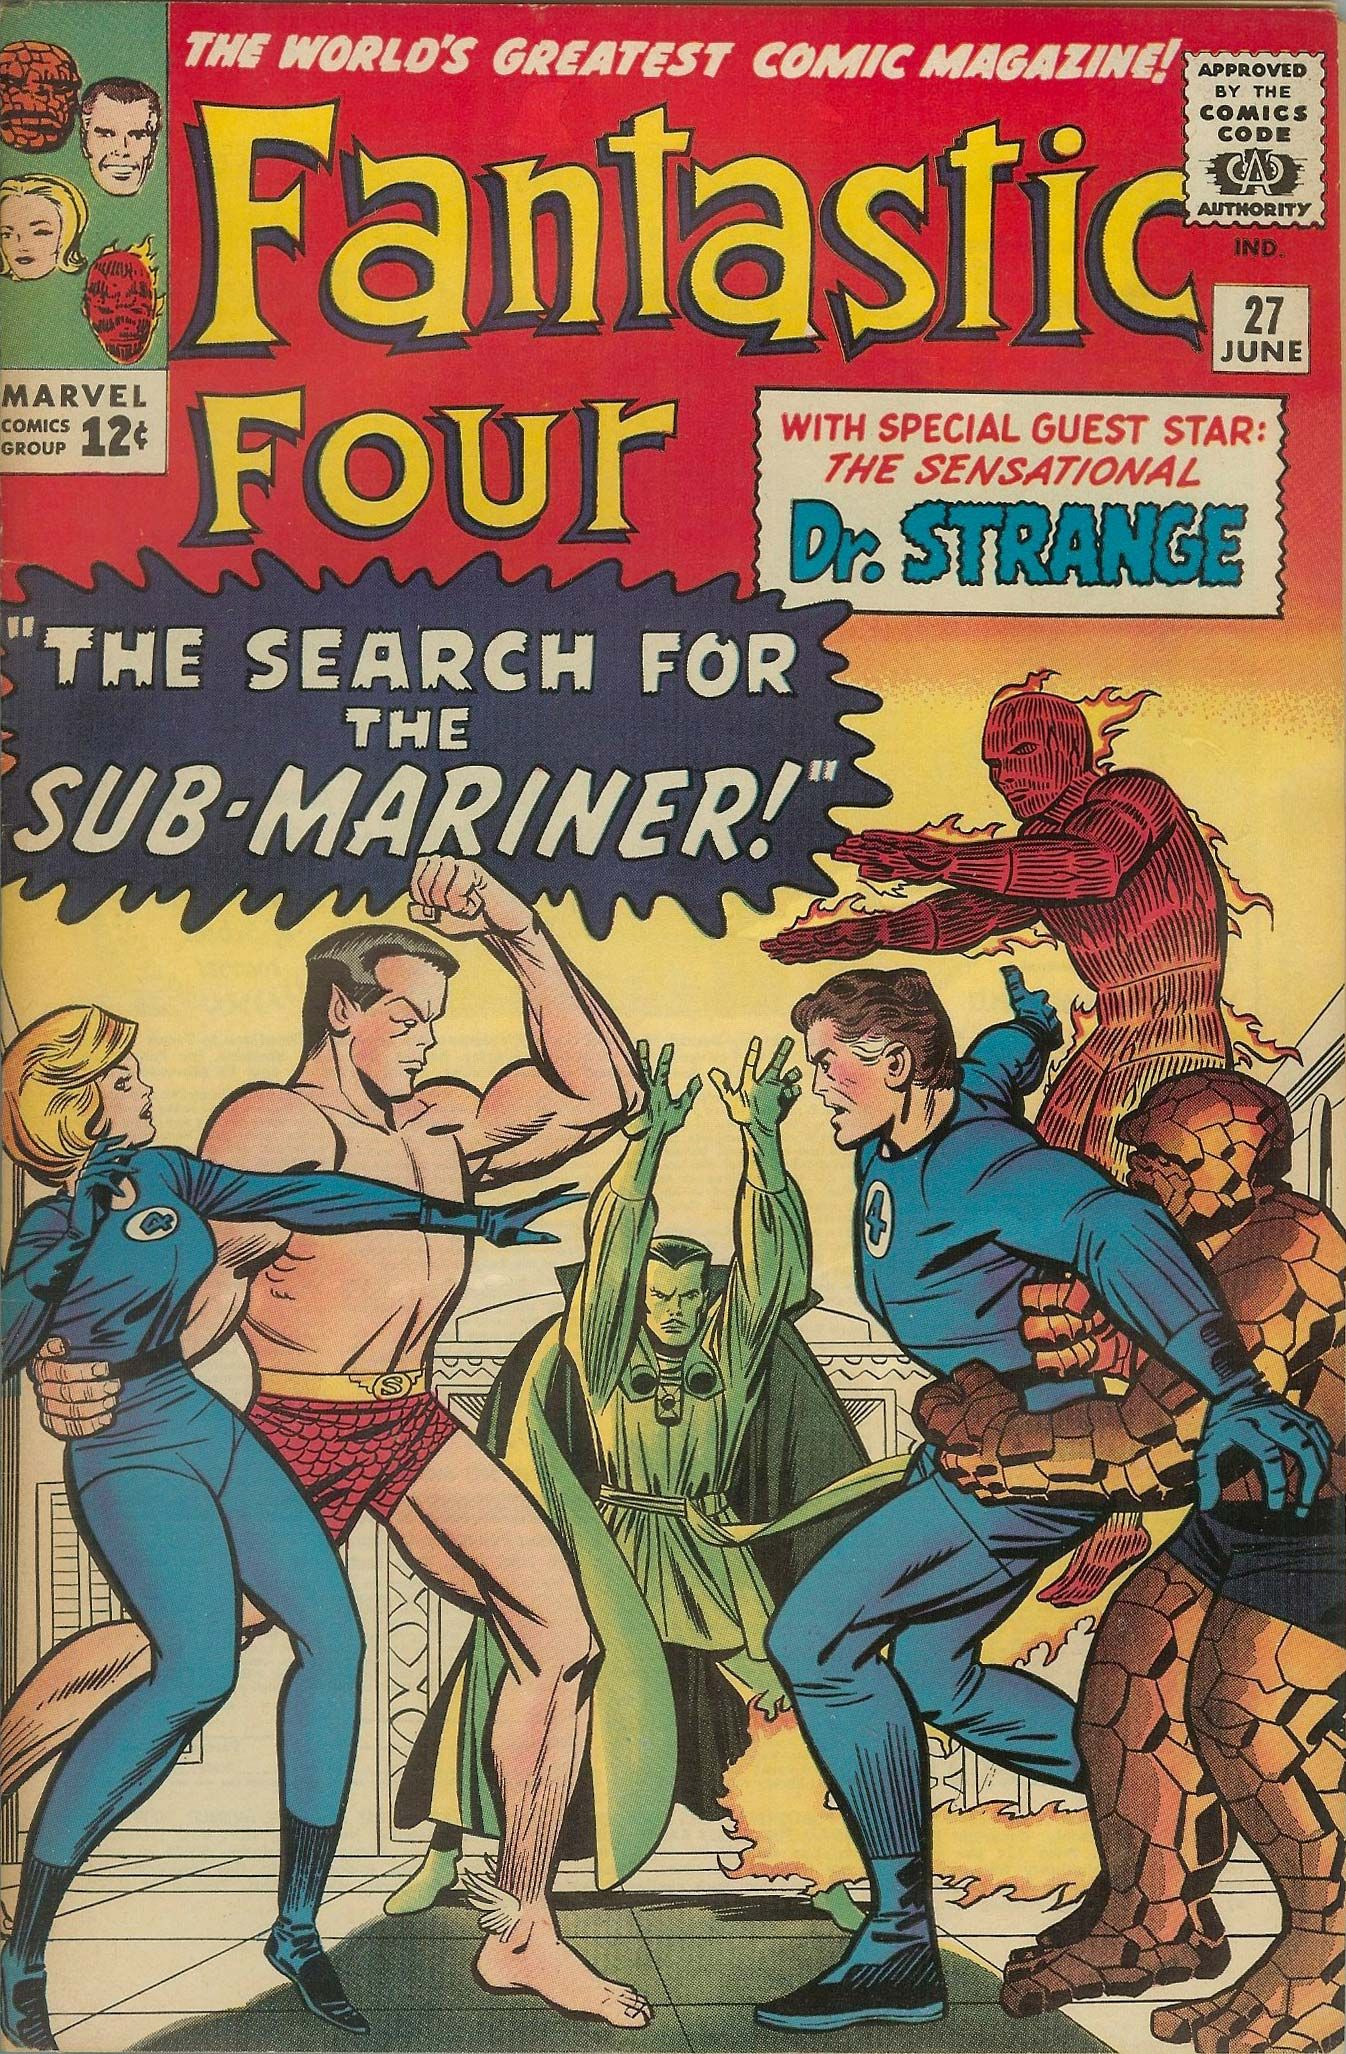 Fantastic Four #27. 1964. Jack Kirby / Chic Stone.